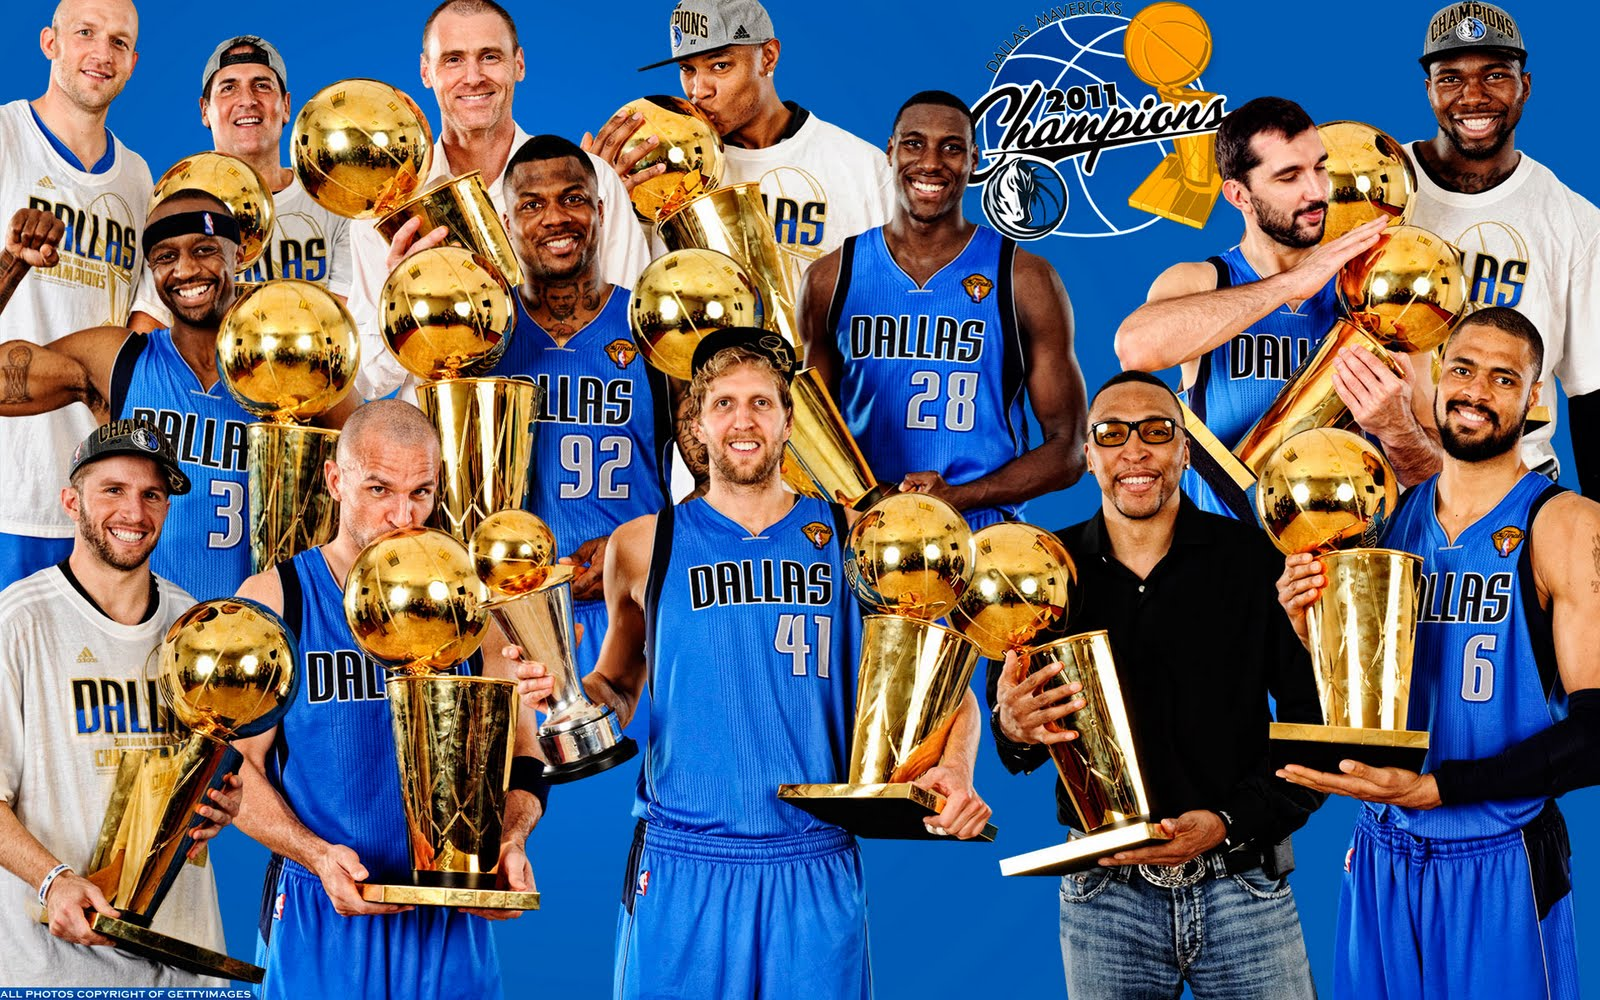 http://1.bp.blogspot.com/-WX2QonnhEIA/Tftiwcg-uFI/AAAAAAAAF3o/CN3bMLCawPQ/s1600/Dallas-Mavericks-2011-Players-With-Trophies-Widescreen-Wallpaper-BasketWallpapers.com-.jpg